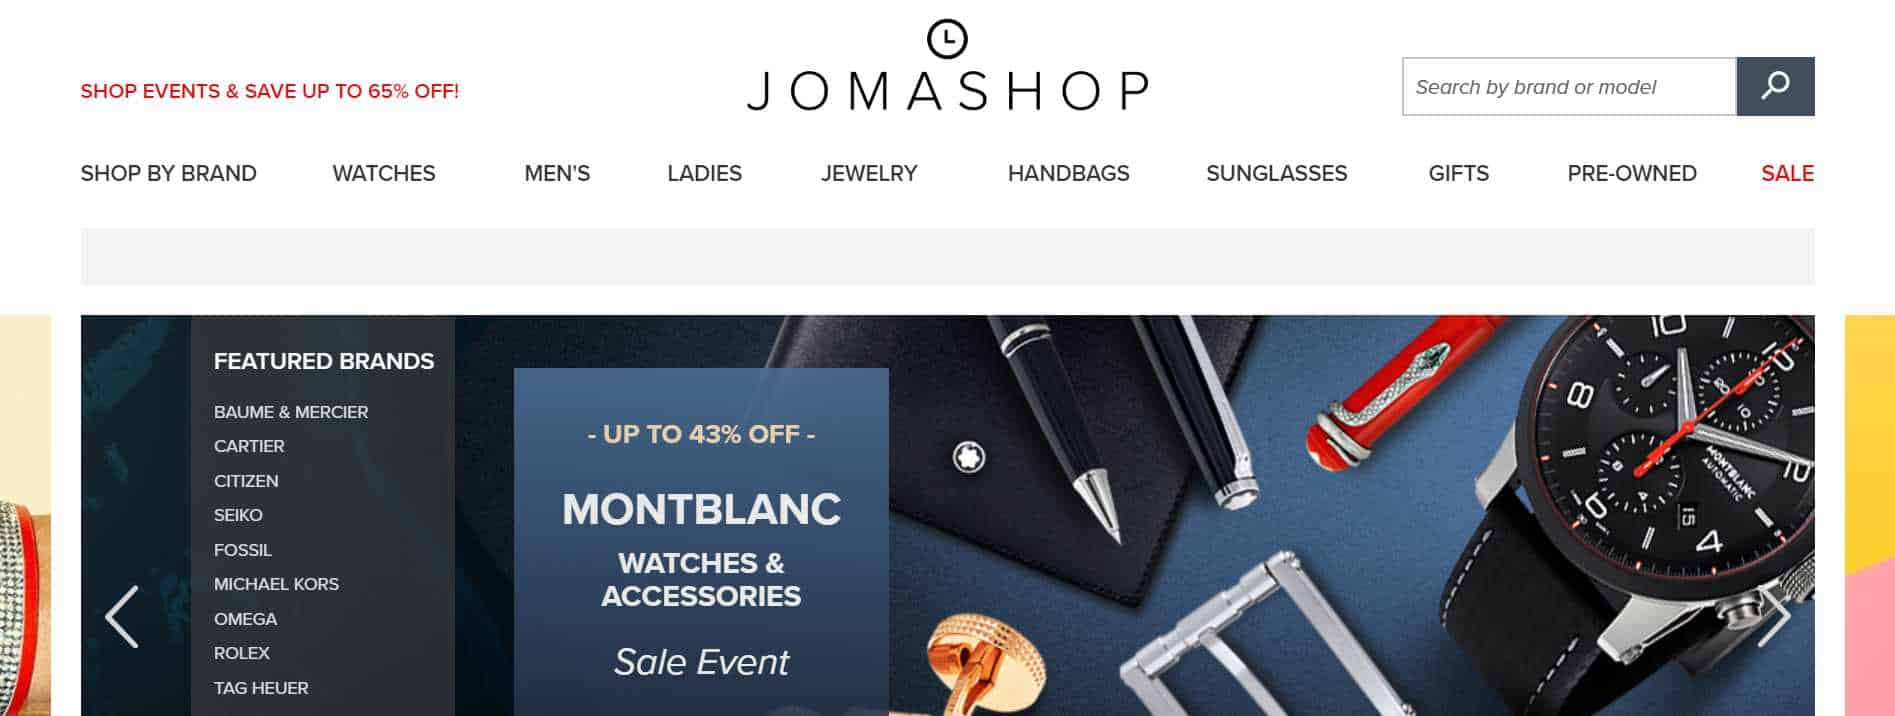 jomashop luxury watches online